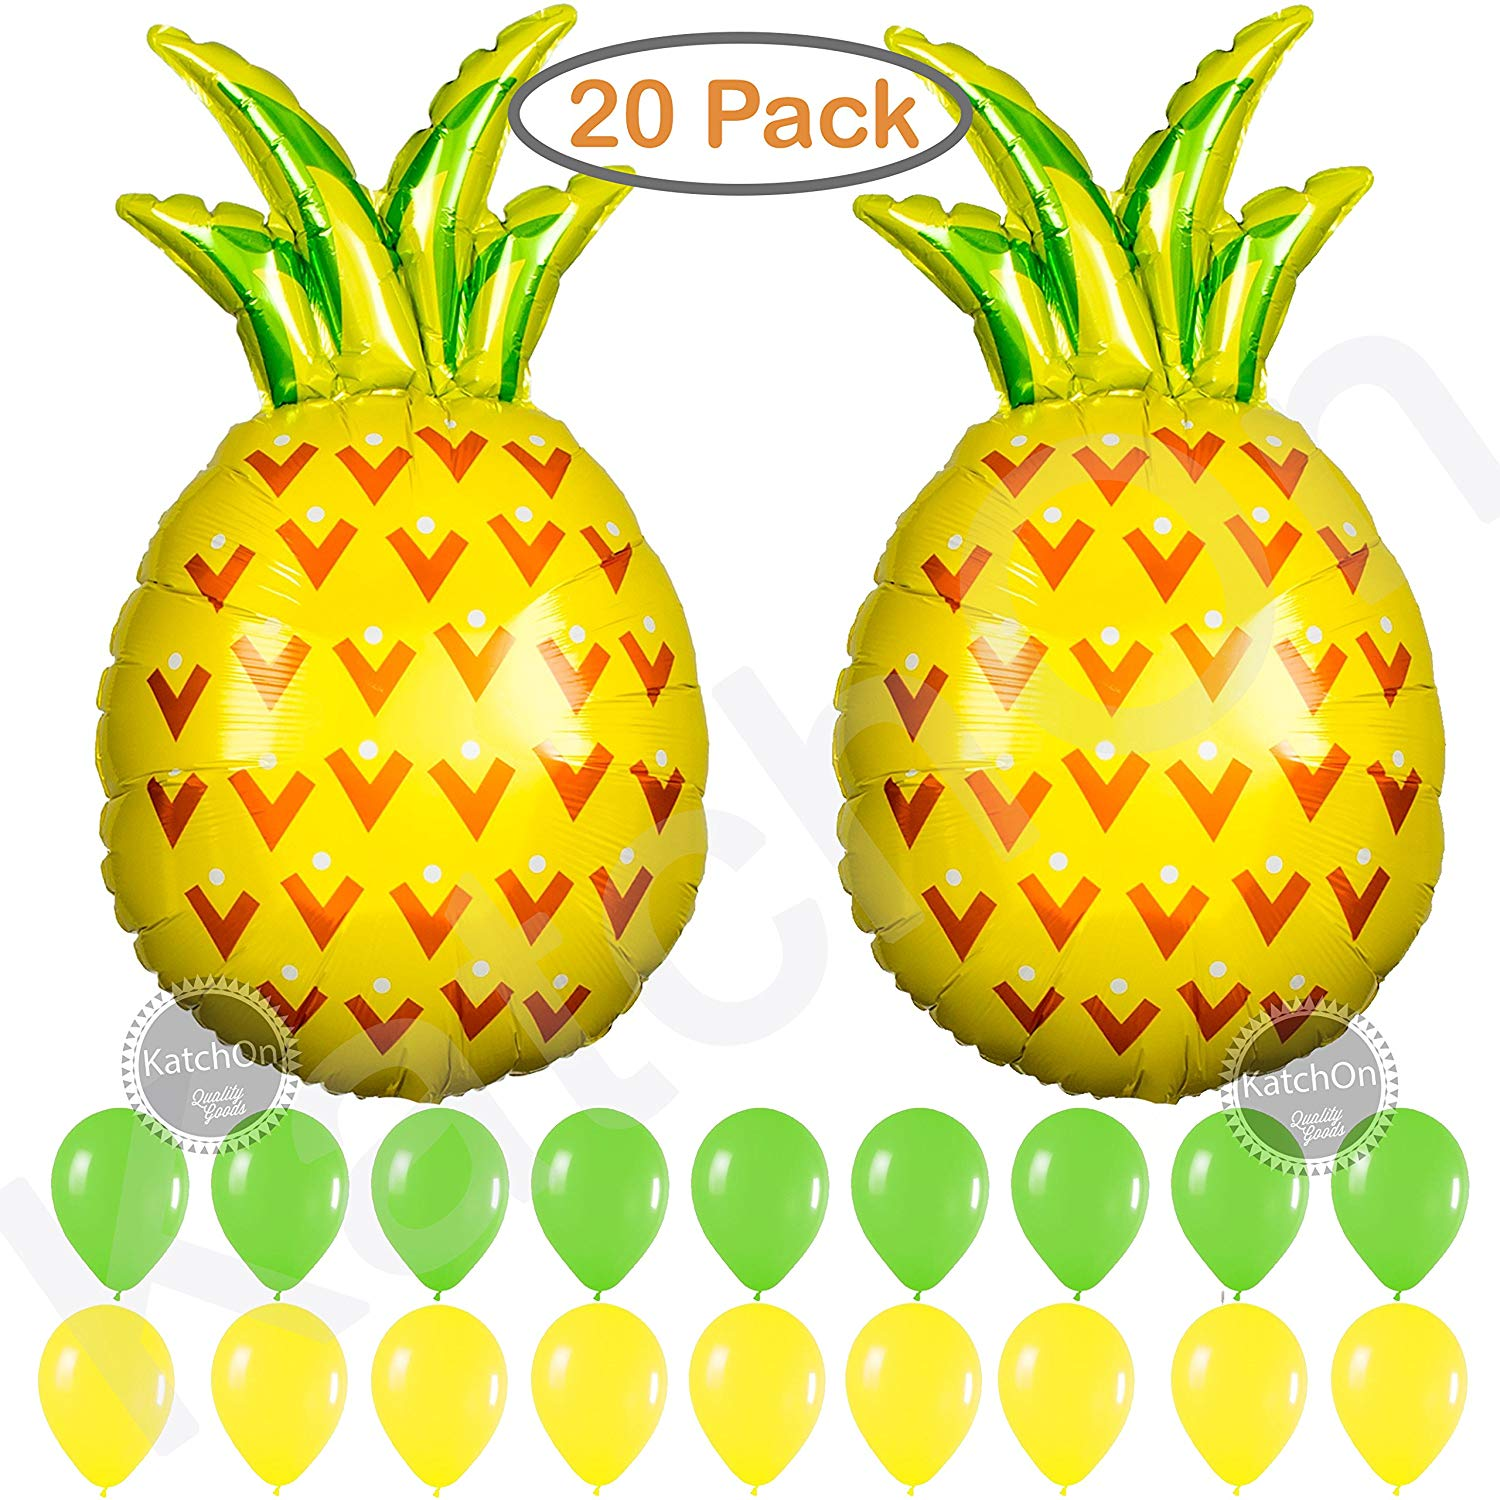 Pineapple Balloons Party Decorations Supplies - Pack of 20 - 2 Giant Helium Pineapple Balloons   9 Green 9 Yellow Latex Balloon   Pineapple Decor   Pineapple Party Decorations   Luau Party Supplies